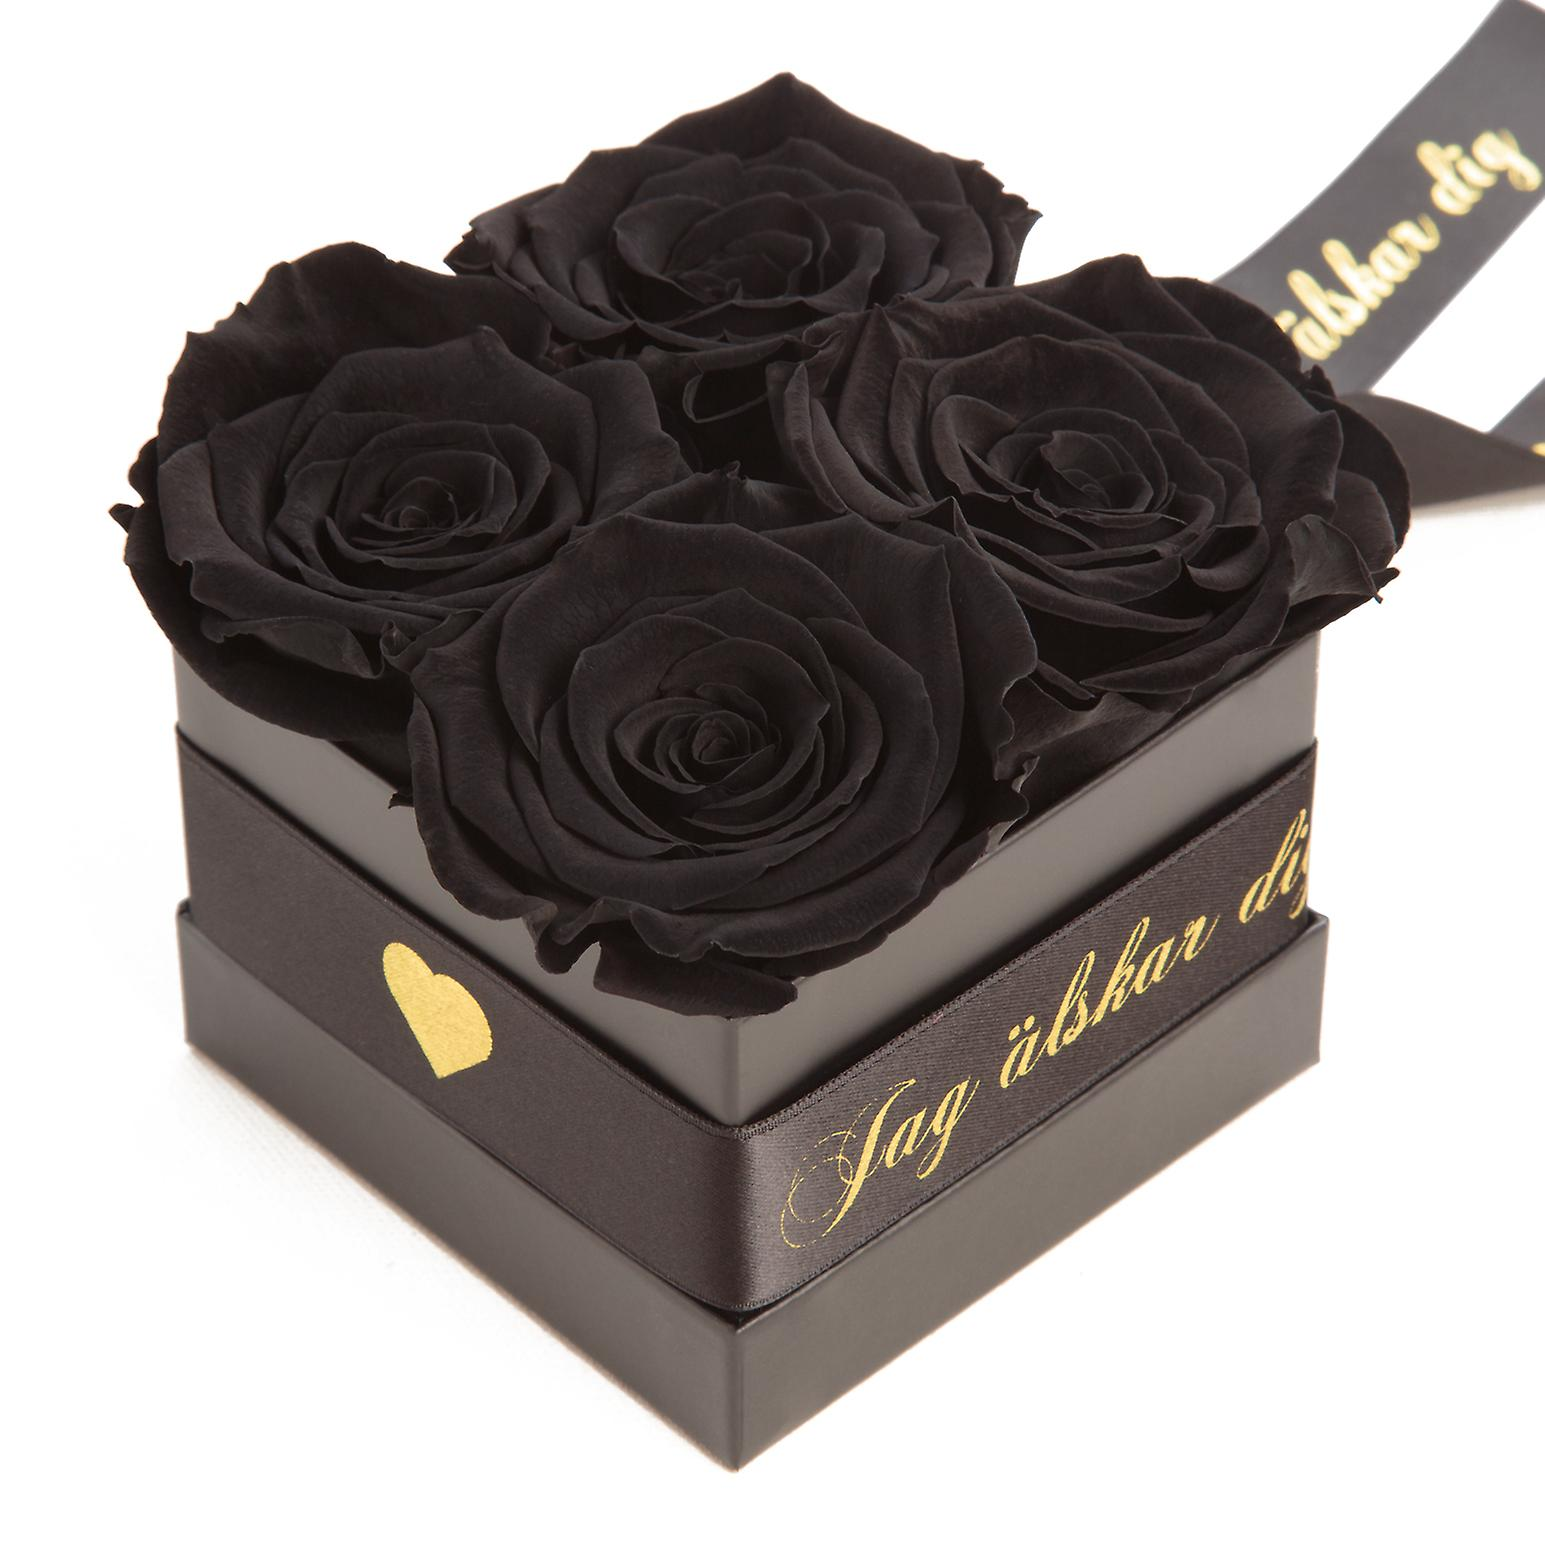 JAG älskar dig Flowerbox with 4 preserved roses black and satin ribbon shelf life 3 years